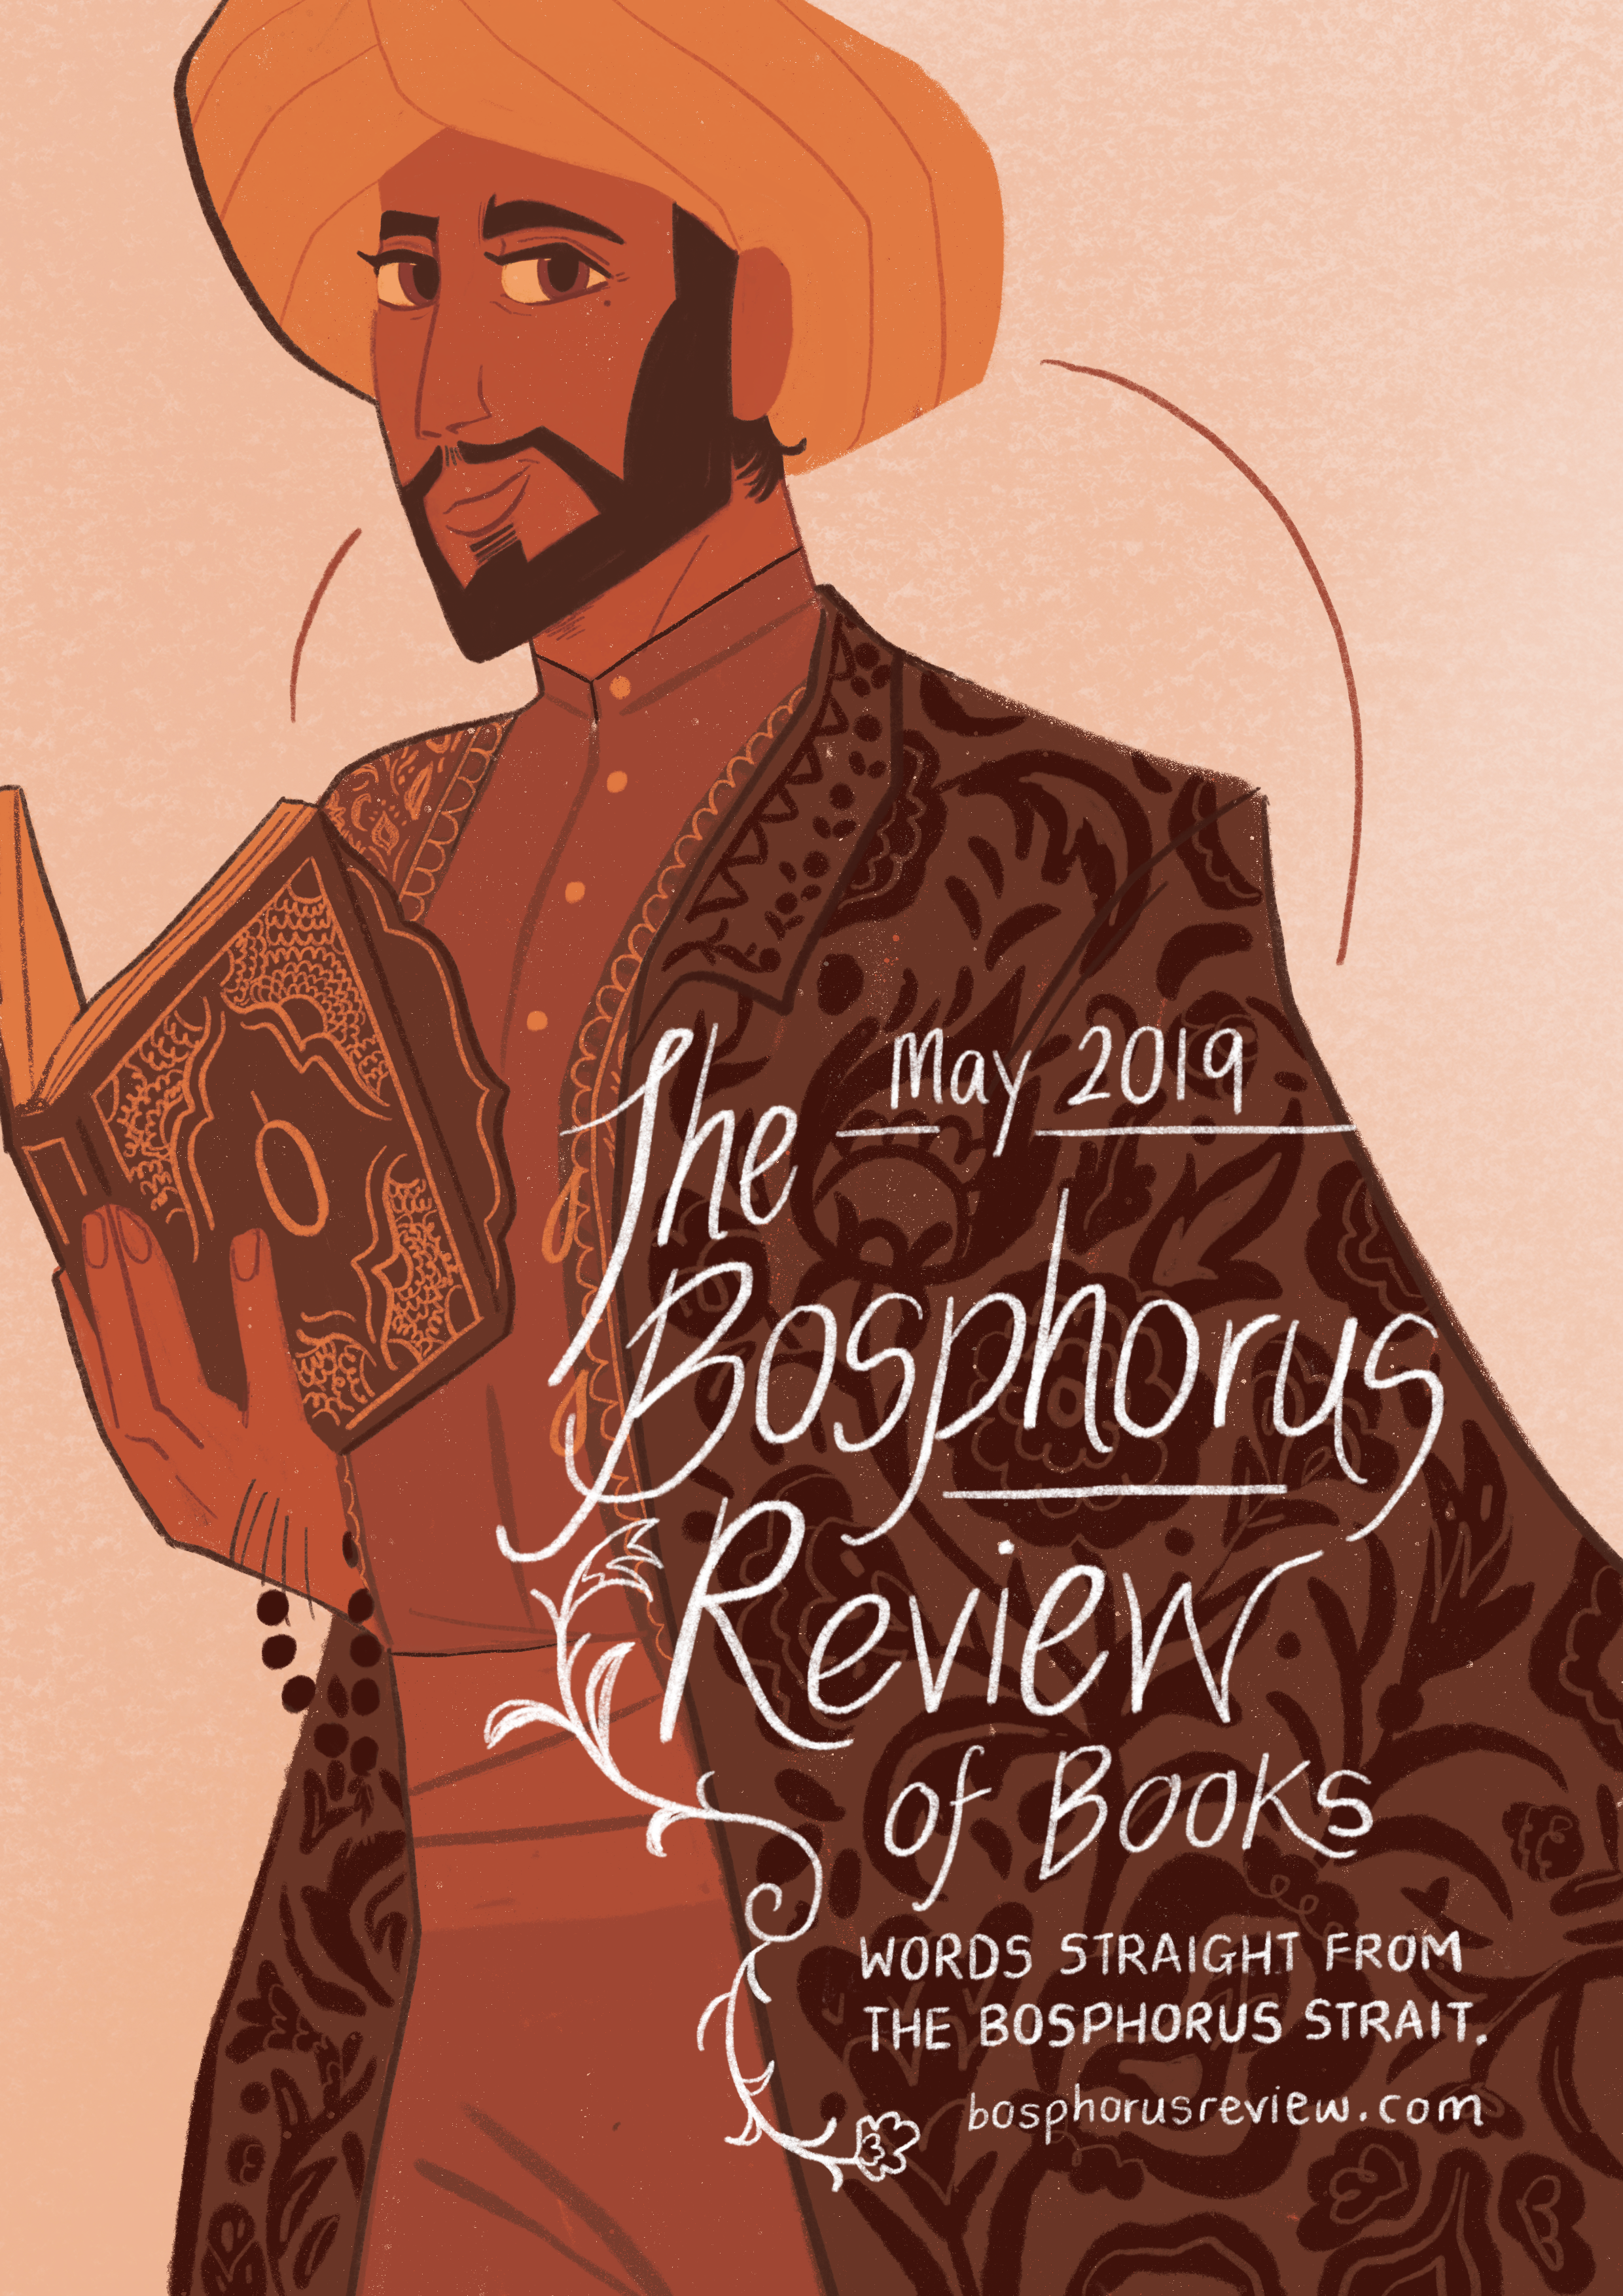 BosphorusReviewMay19.png